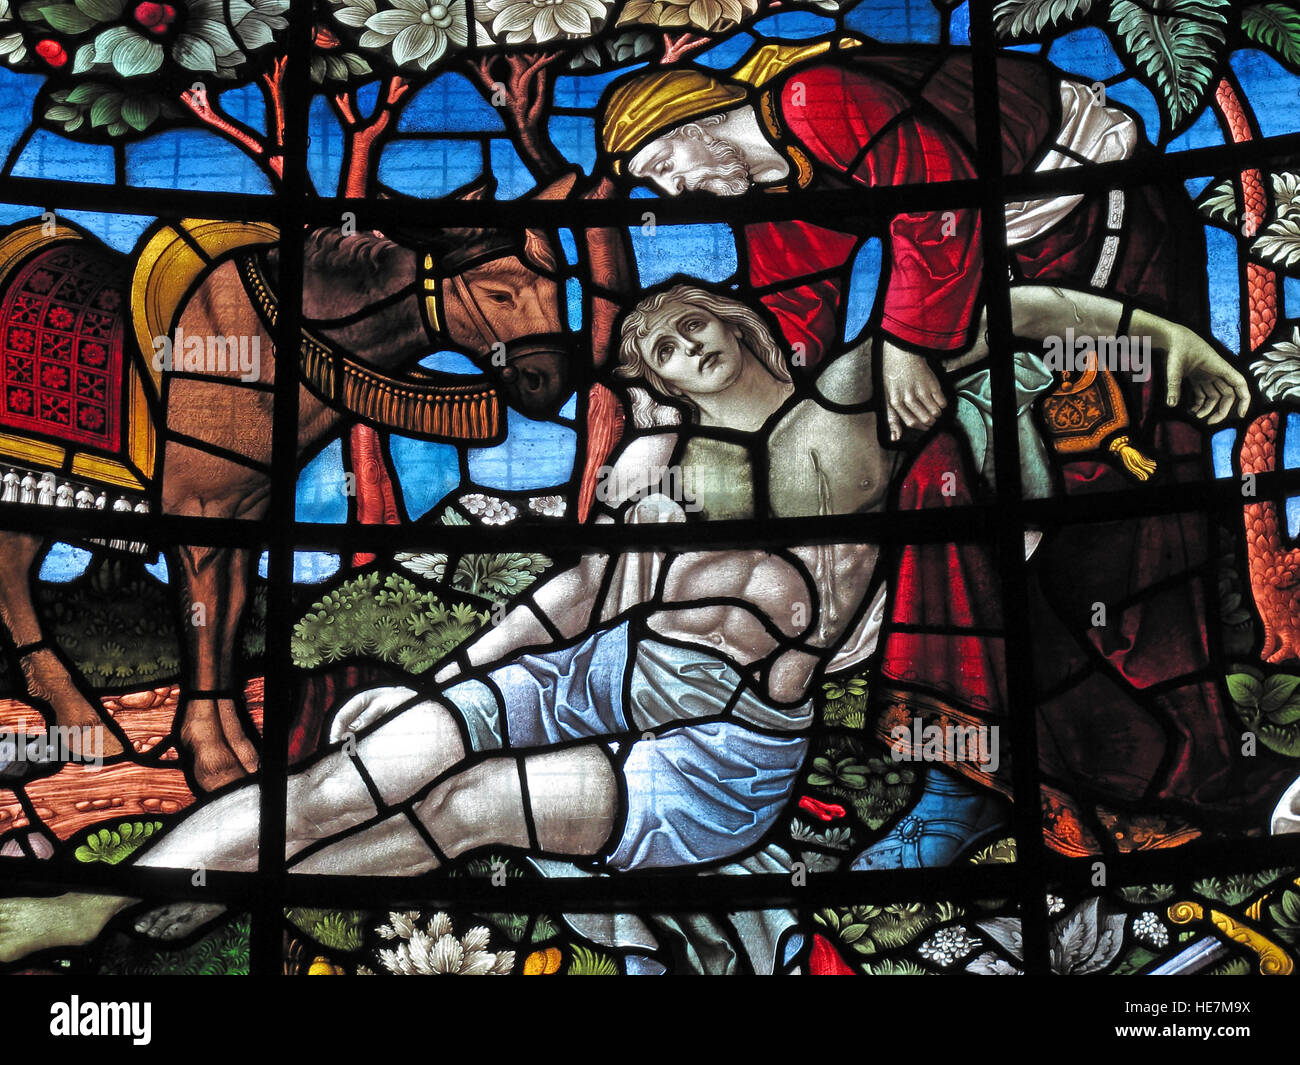 Inside,architecture,building,stone,arch,holy,St Annes,Belfast Cathedral,saint,Annes,Stained glass,Jesus,Donkey,taken down from the cross,taken,down,from,the,cross,GoTonySmith,@HotpixUK,Tony,Smith,UK,GB,Great,Britain,United,Kingdom,Irish,British,Ireland,problem,with,problem with,issue with,NI,Northern,Northern Ireland,Belfast,City,Centre,Art,Artists,the,troubles,The Troubles,Good Friday Agreement,Peace,honour,painting,wall,walls,tribute,republicanism,Fight,Justice,West,Beal,feirste,martyrs,social,tour,tourism,tourists,urban,six,counties,6,backdrop,county,Antrim,Quarter,Buy Pictures of,Buy Images Of,Images of,Stock Images,Tony Smith,United Kingdom,Great Britain,British Isles